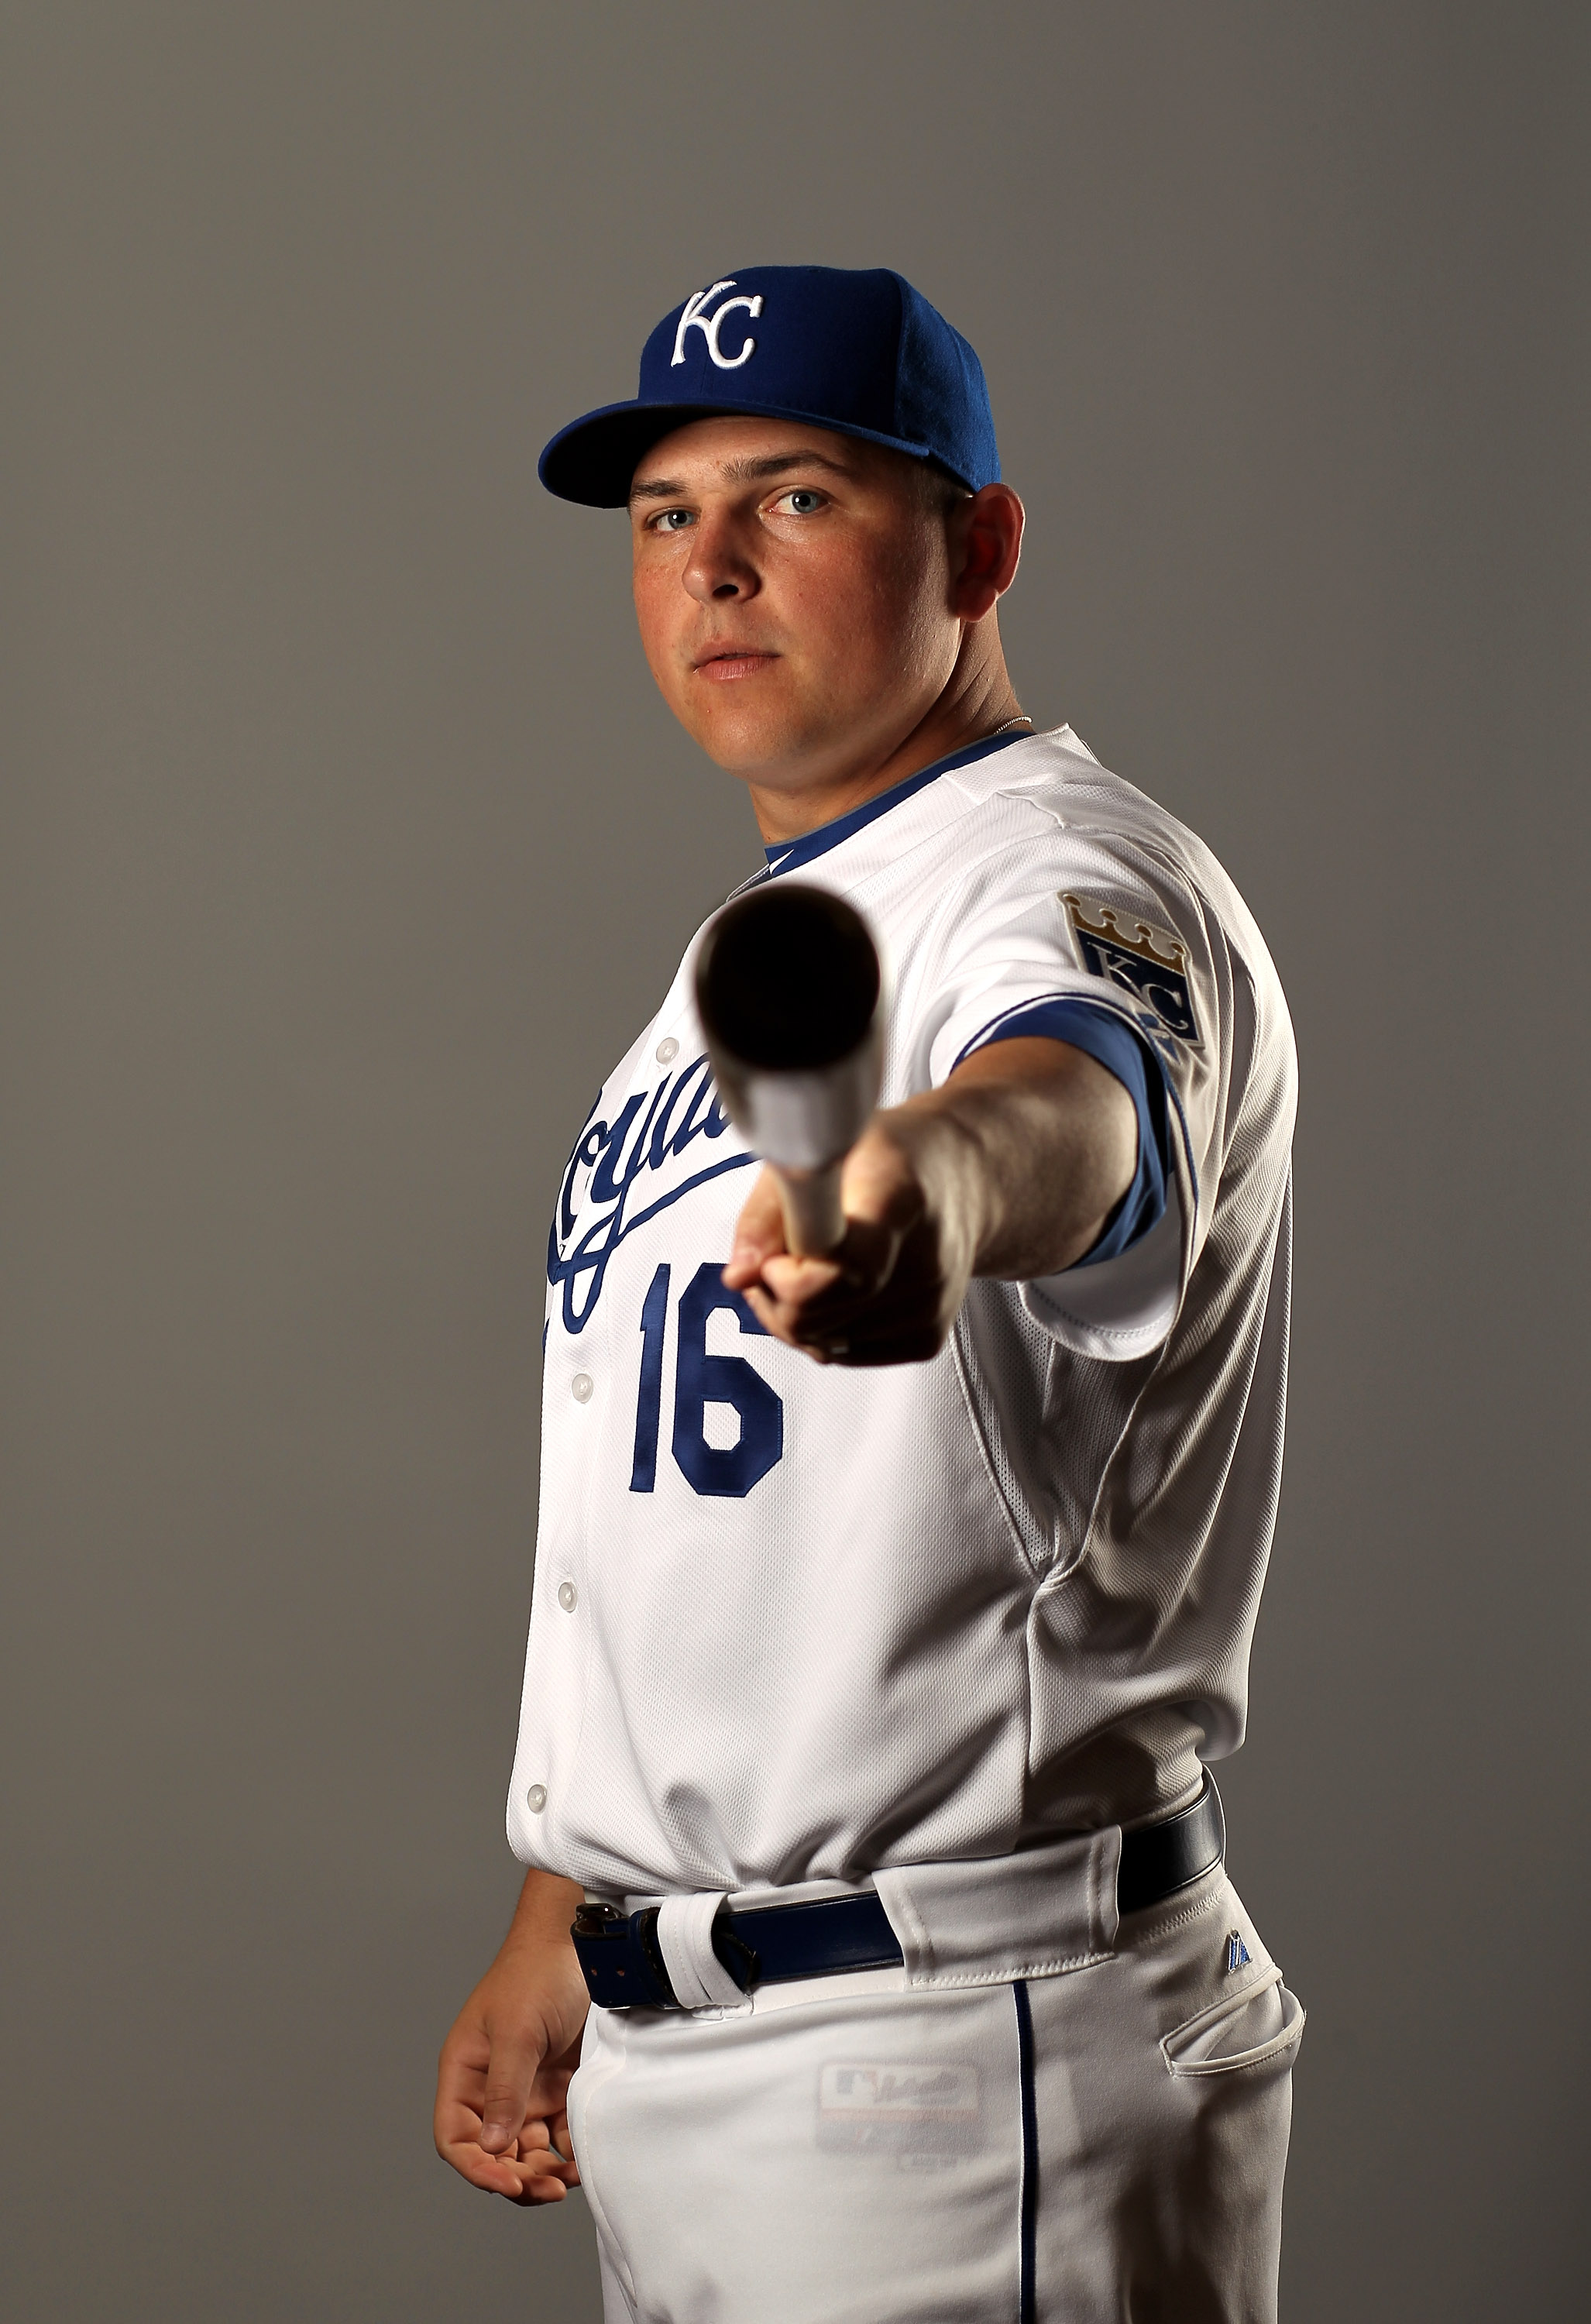 SURPRISE, AZ - FEBRUARY 26:  Billy Butler of the Kansas City Royals poses during photo media day at the Royals spring training complex on February 26, 2010 in Surprise, Arizona.  (Photo by Ezra Shaw/Getty Images)